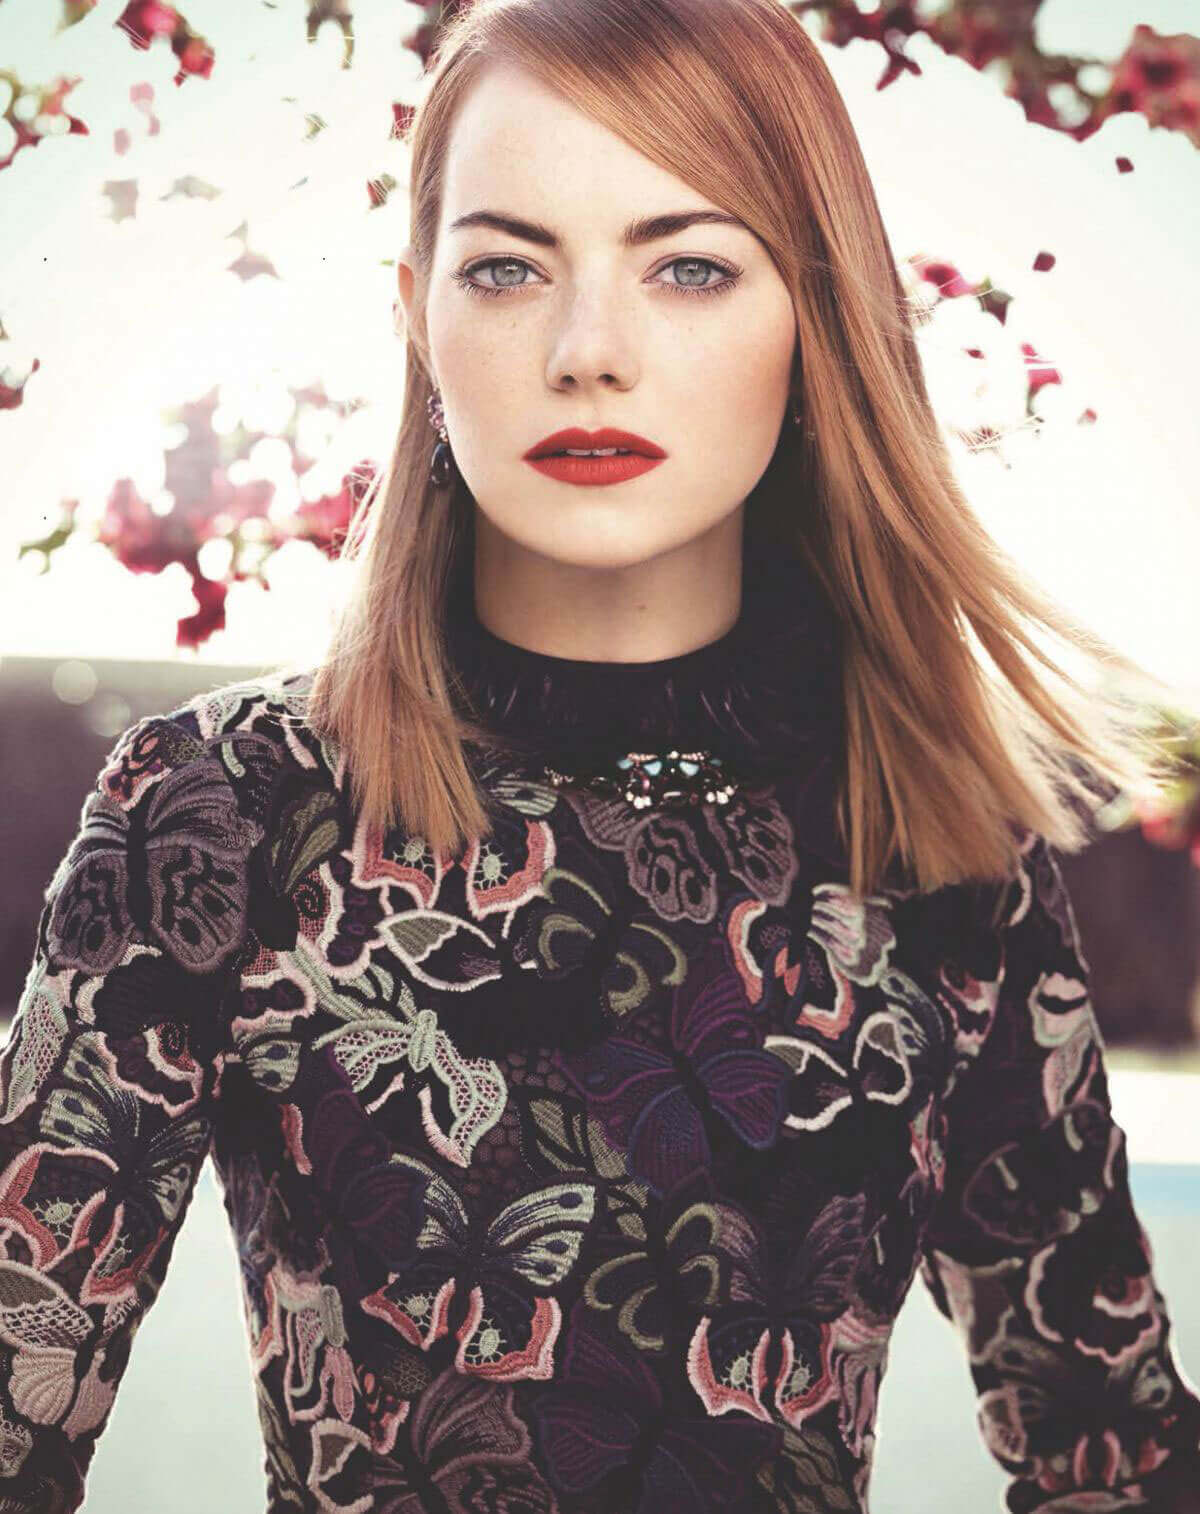 Emma Stone Photos for Who Magazine, Glamour Issue 2017